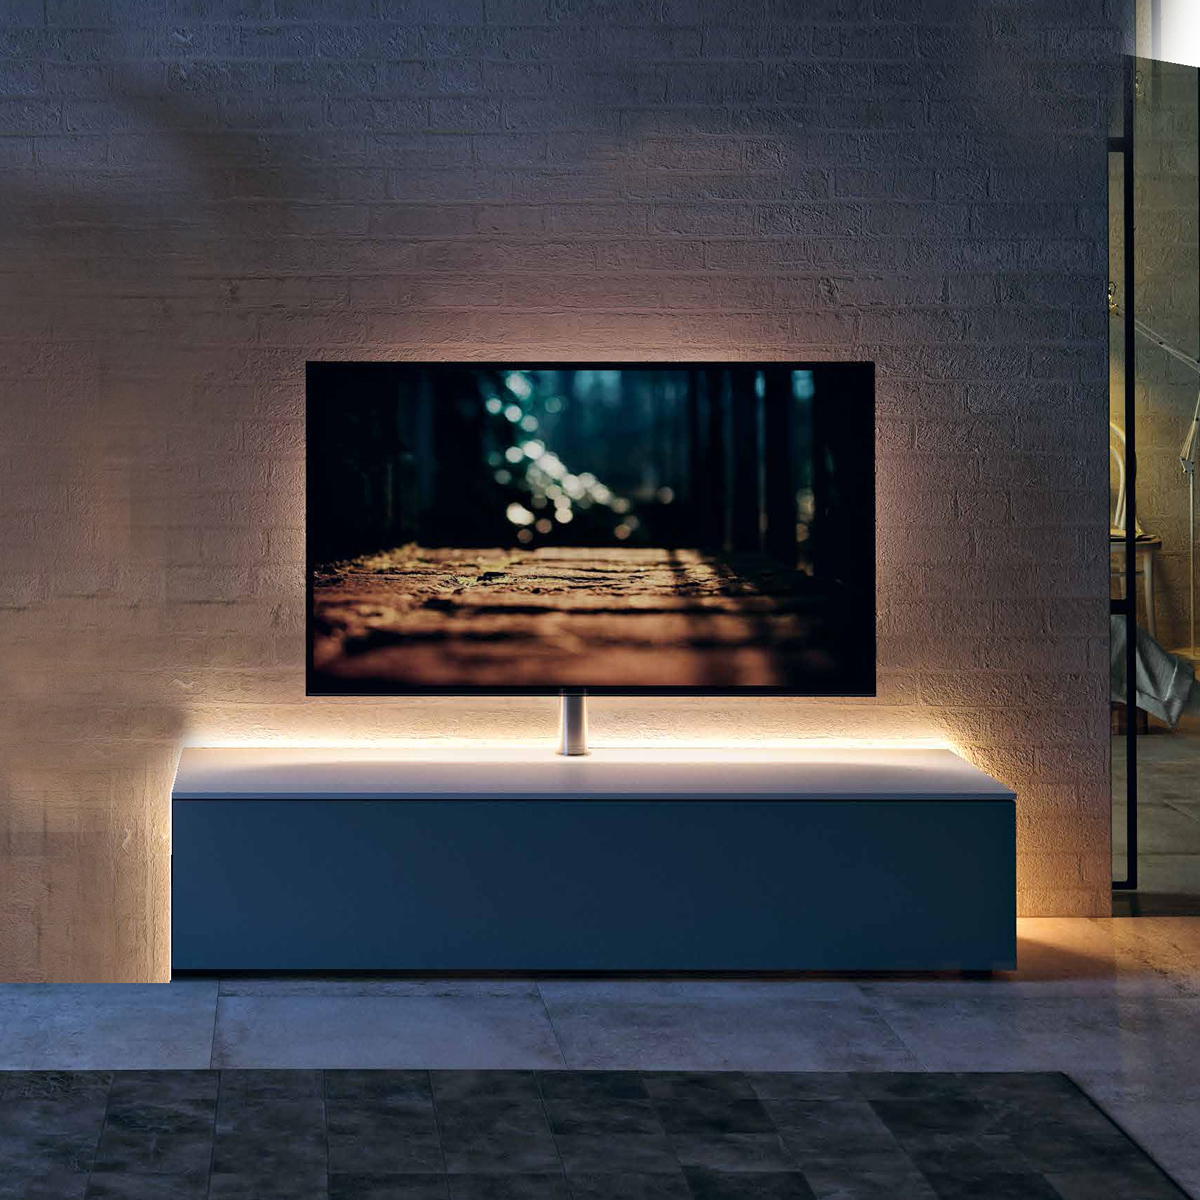 Neu:Spectral-next-smart-light-hifi-tv-möbel